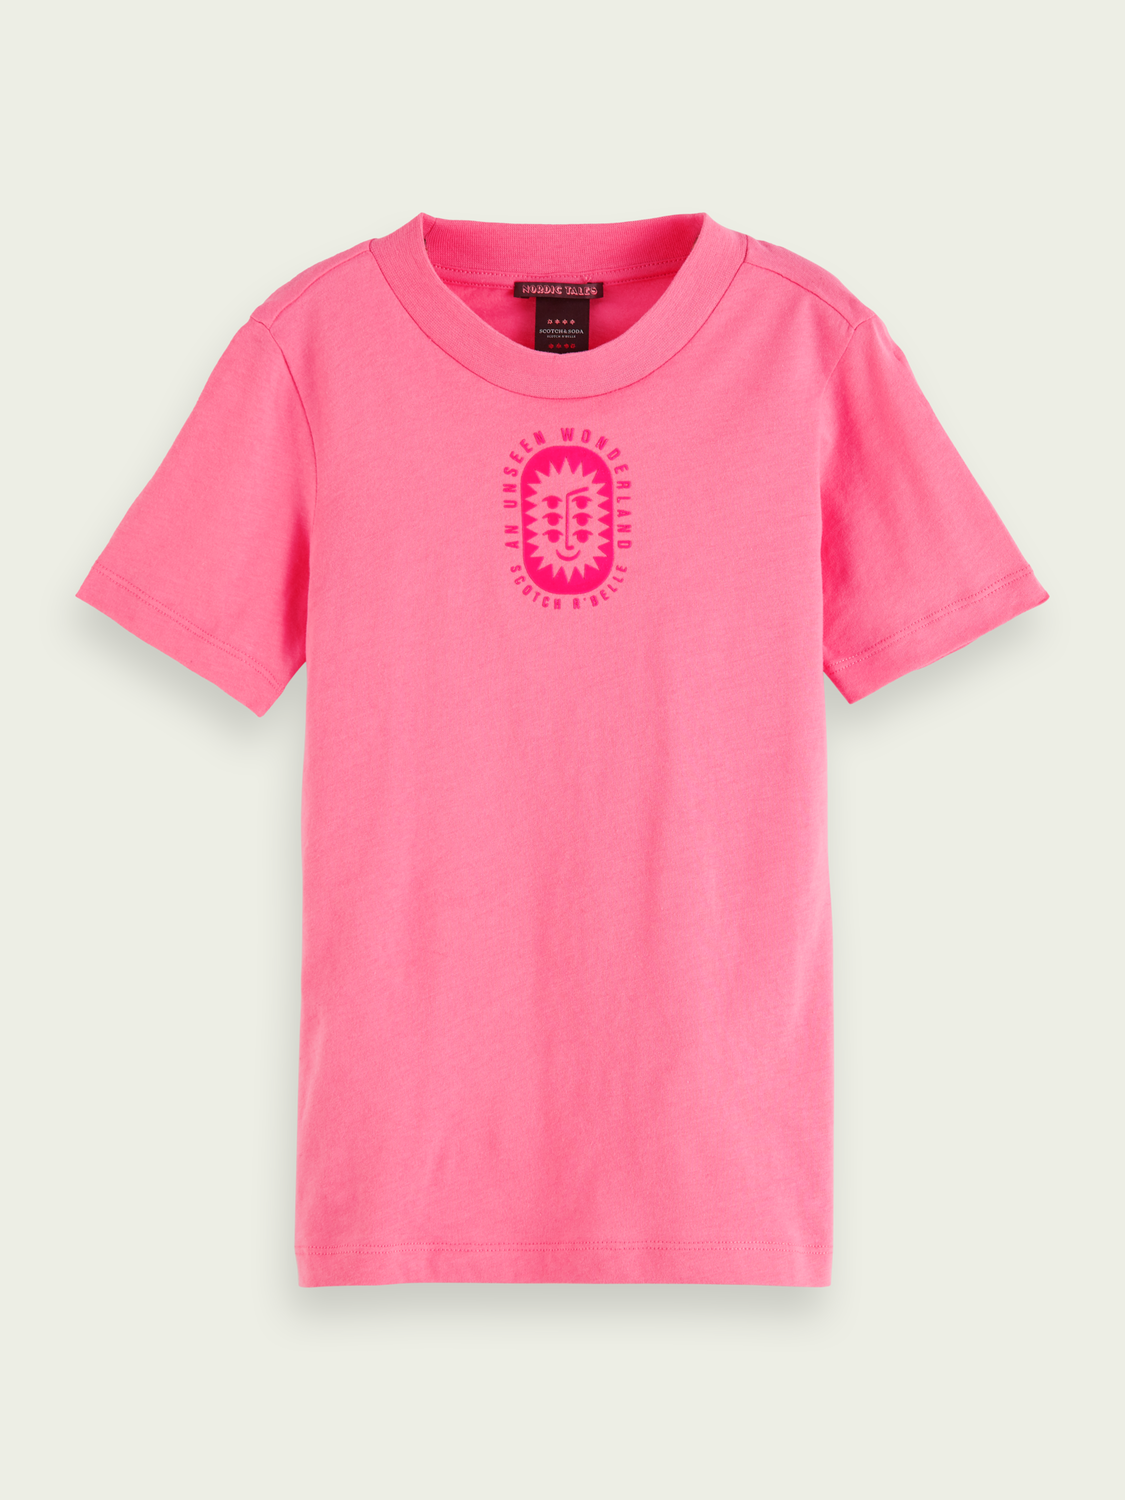 Girls Cotton short sleeve t-shirt